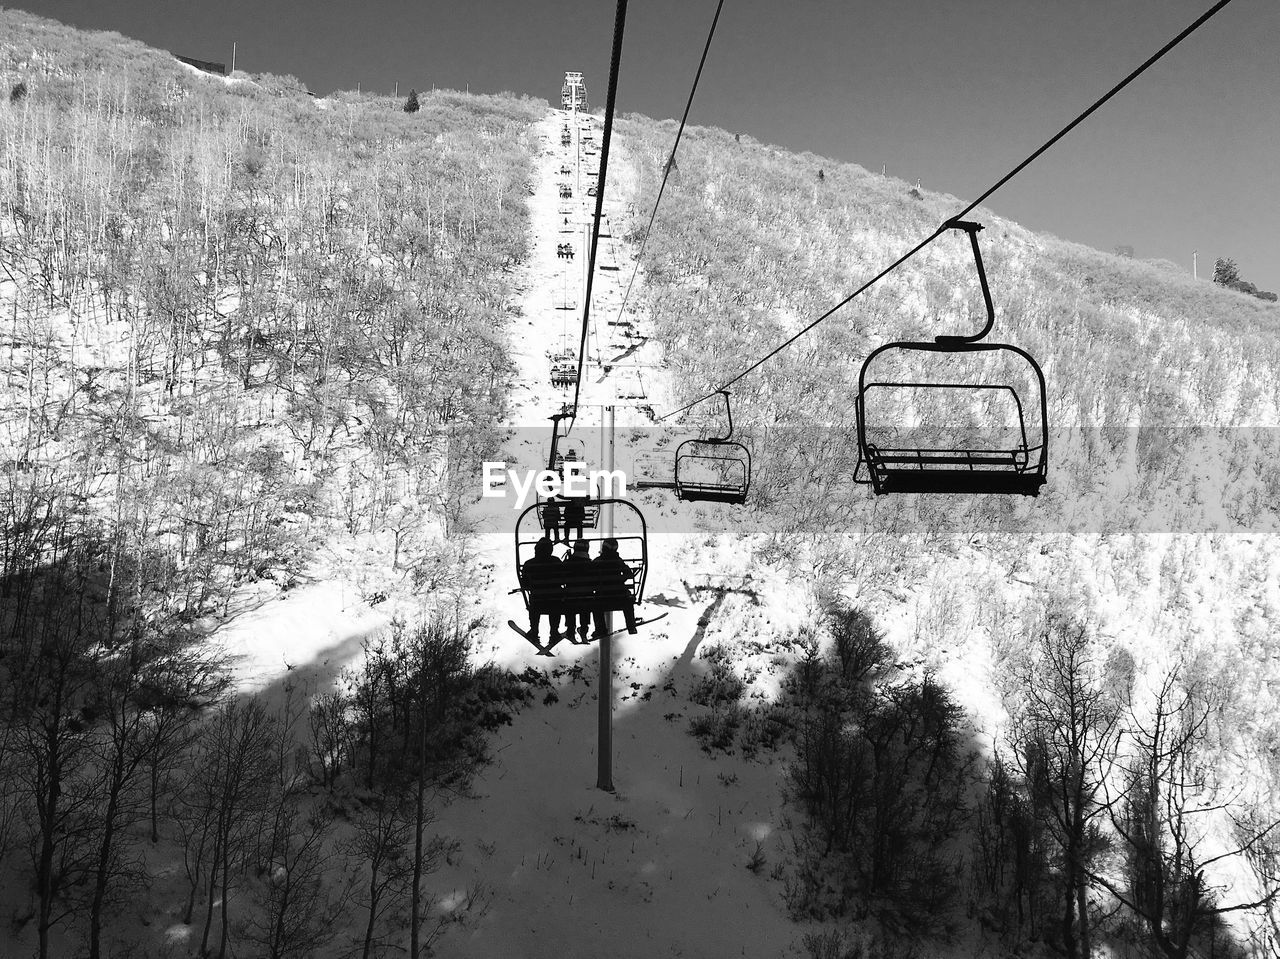 cable car, overhead cable car, ski lift, tree, transportation, plant, mode of transportation, nature, cable, day, mountain, snow, outdoors, cold temperature, beauty in nature, travel, sky, real people, land